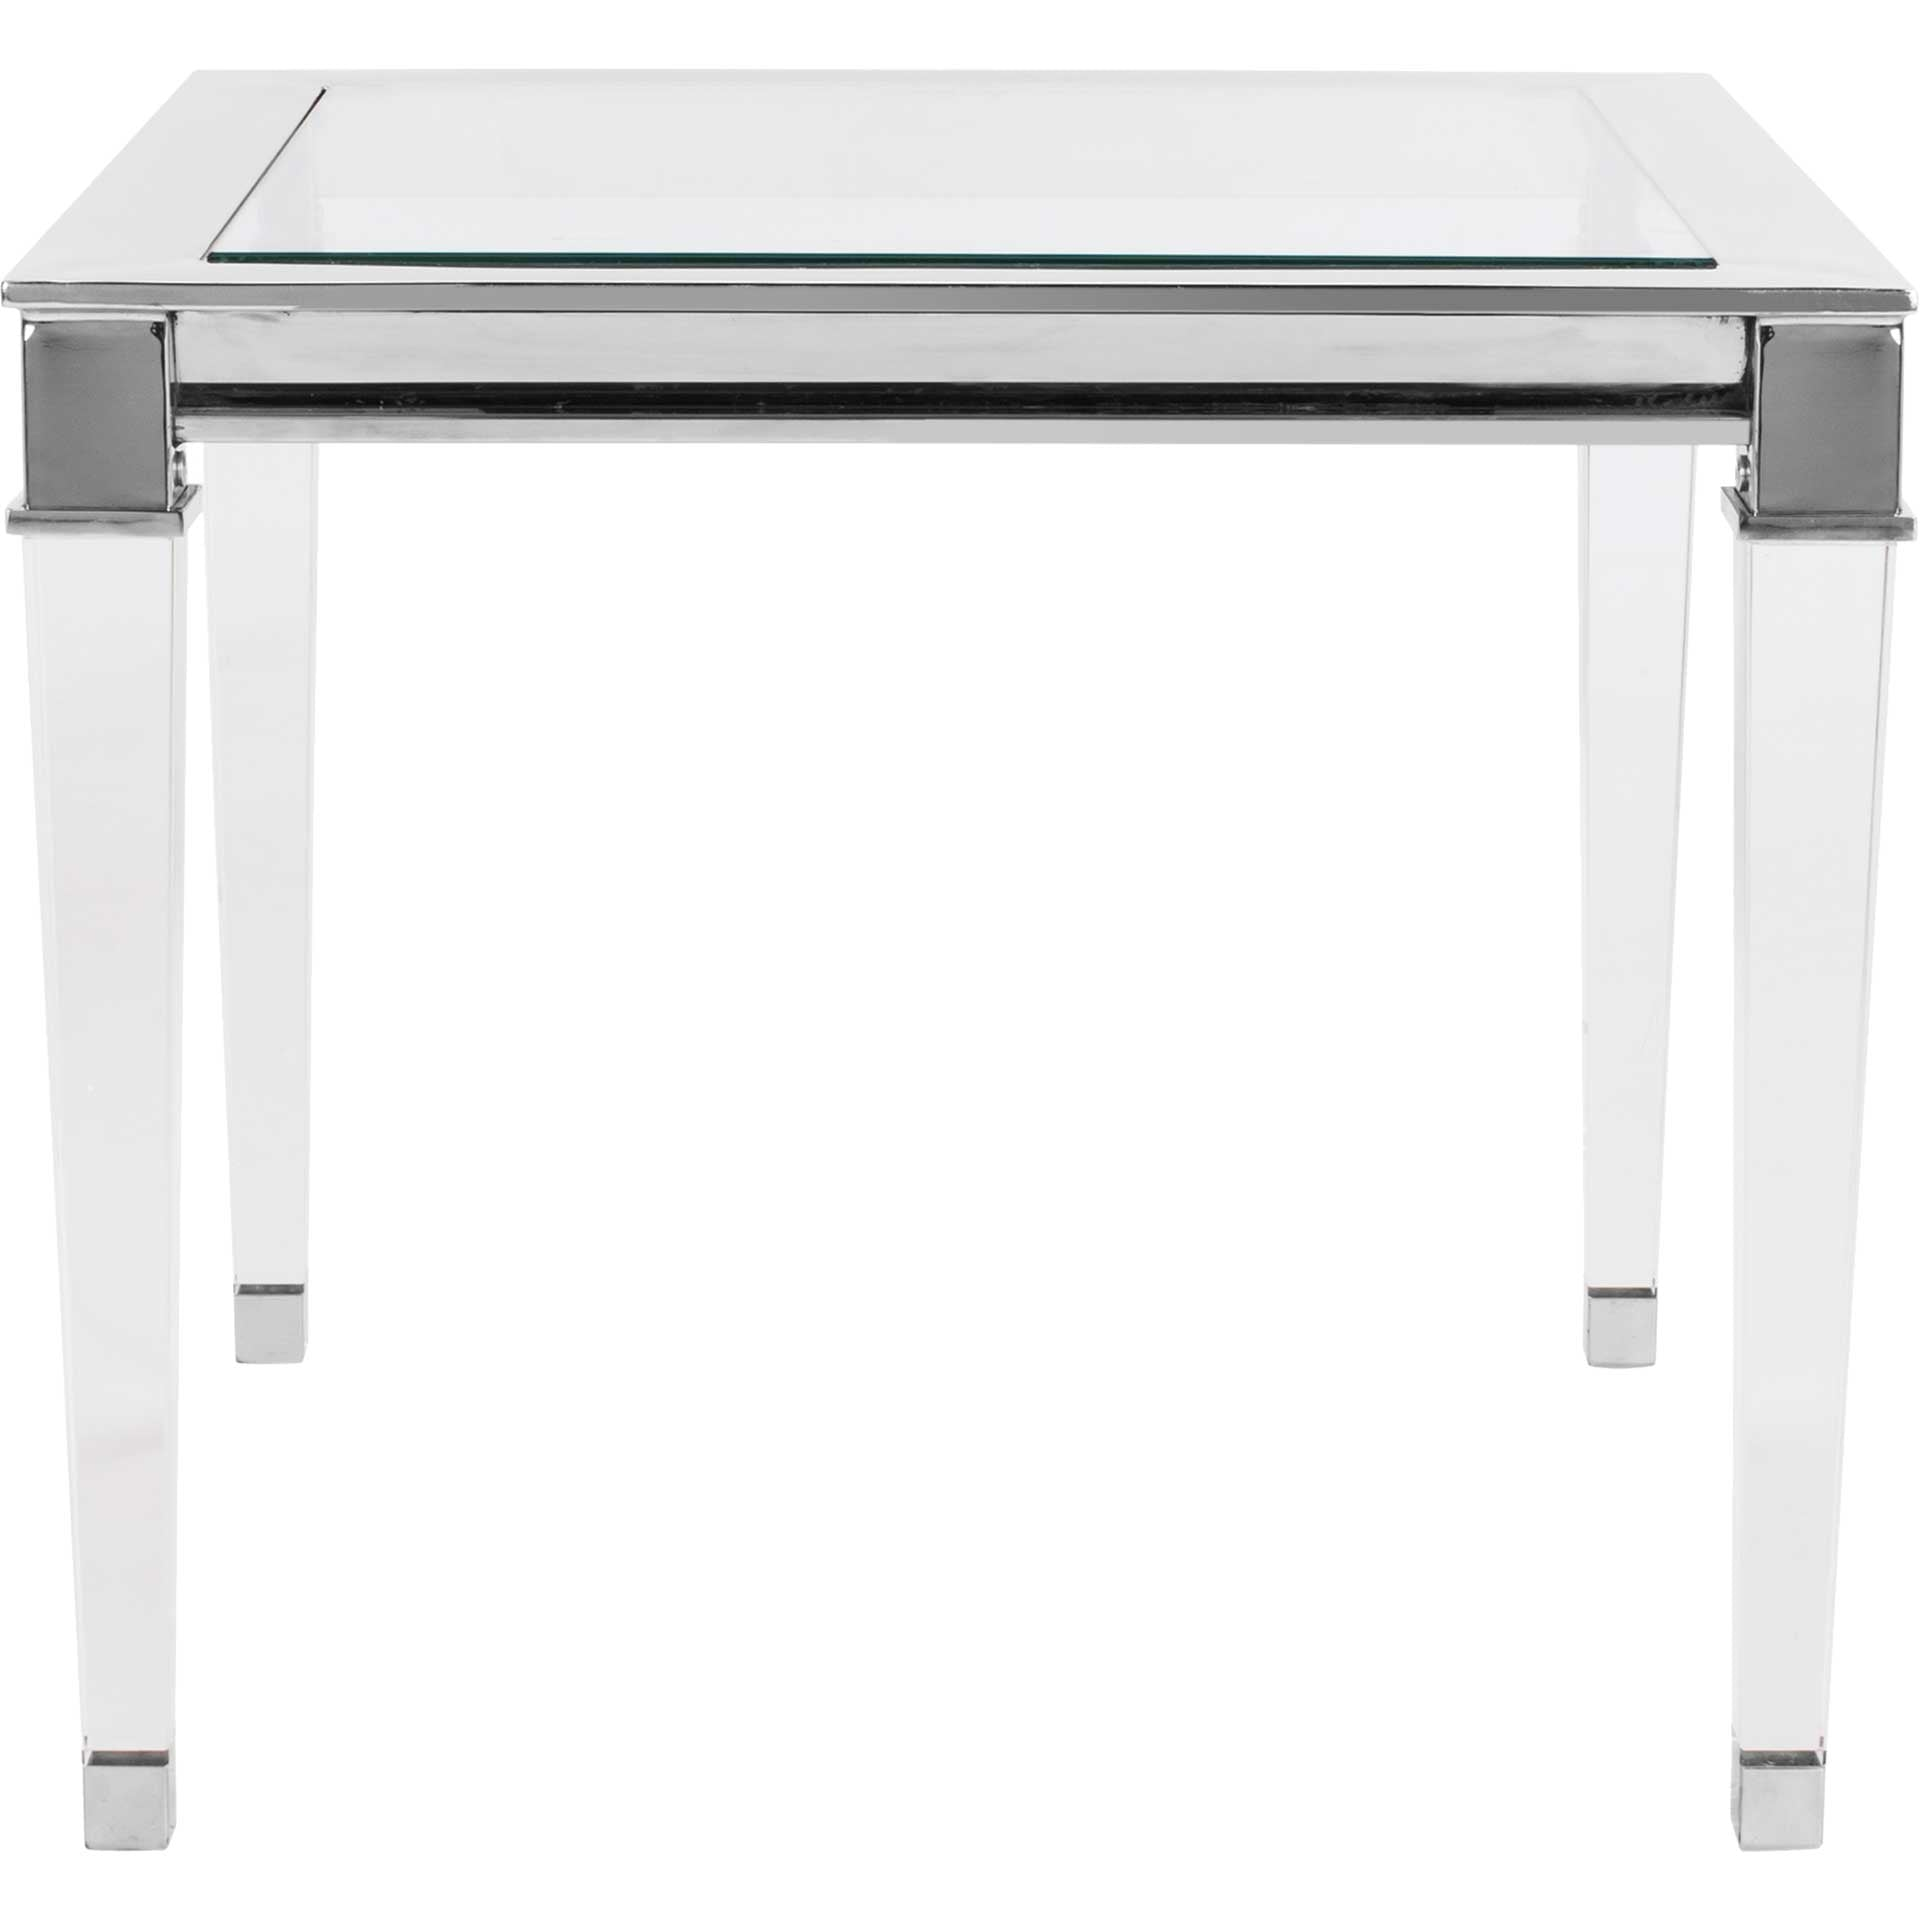 Channing Acrylic End Table